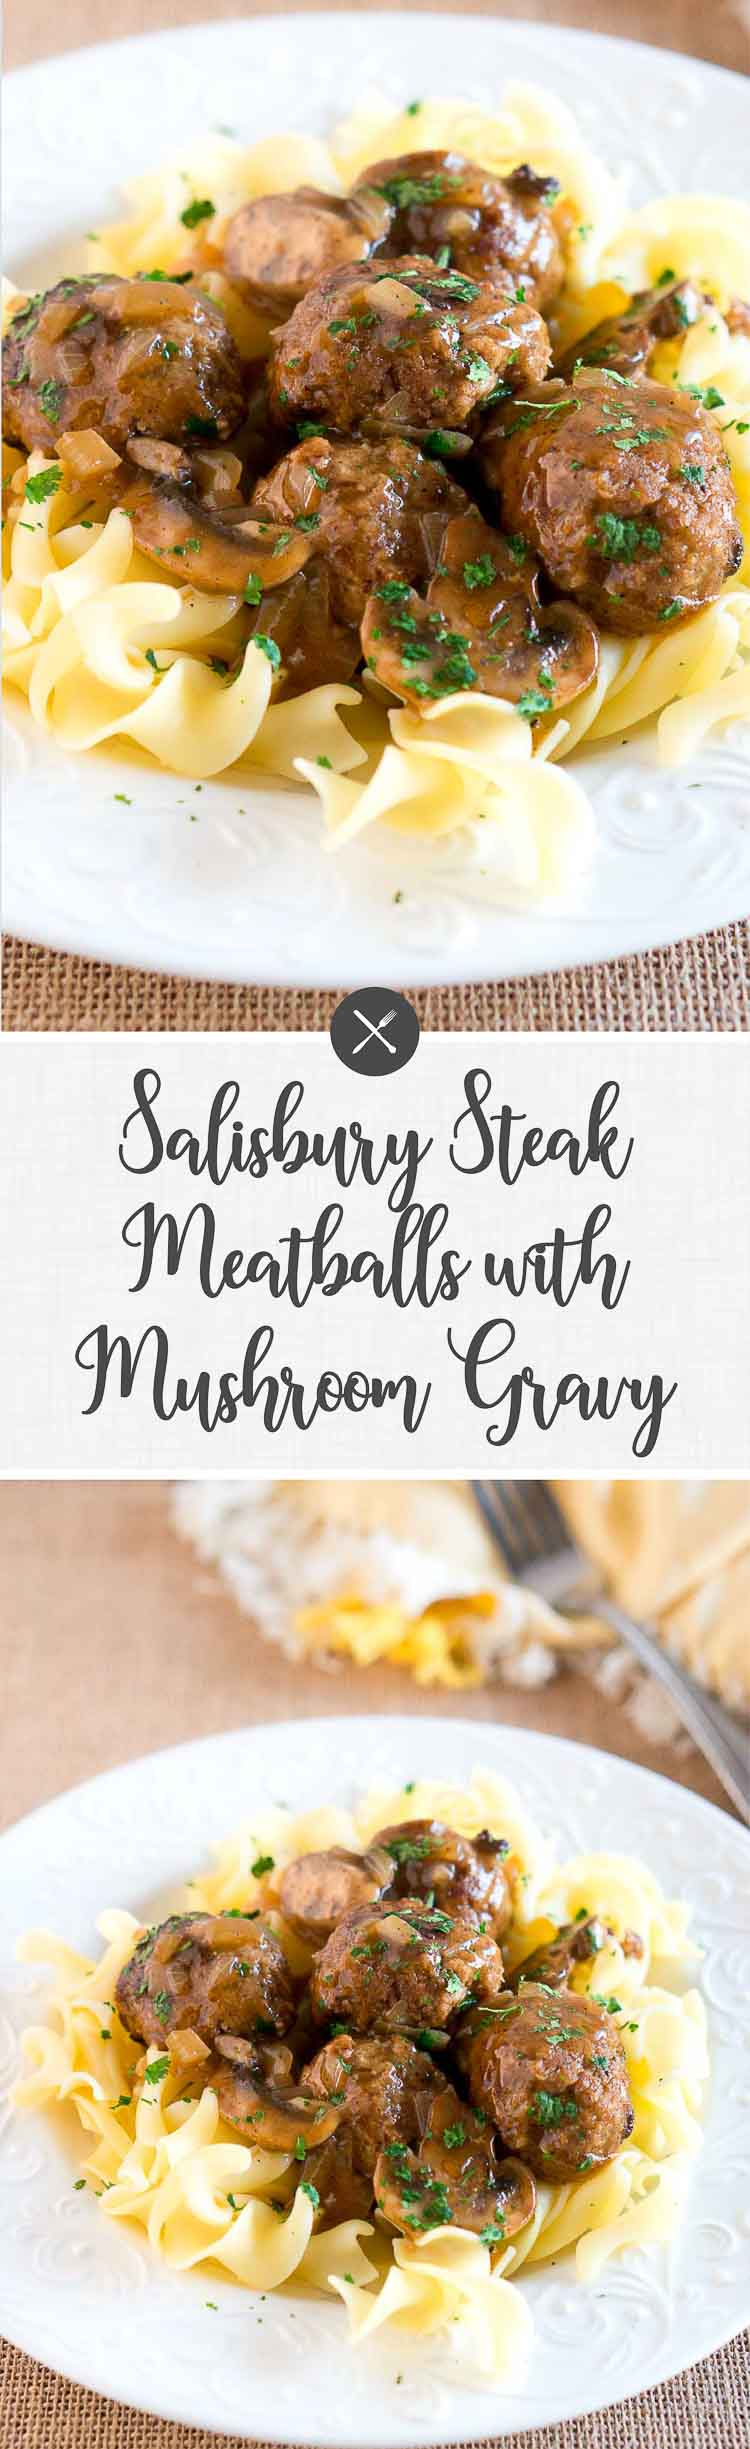 Salisbury Steak Meatballs with Mushroom Gravy is a great dinner idea for busy weeknights.It comes together in 30 min-so delicious and comforting. #comfortfood #meatballs #mushroomsauce #salisburysteak #easyrecipes #30minutes